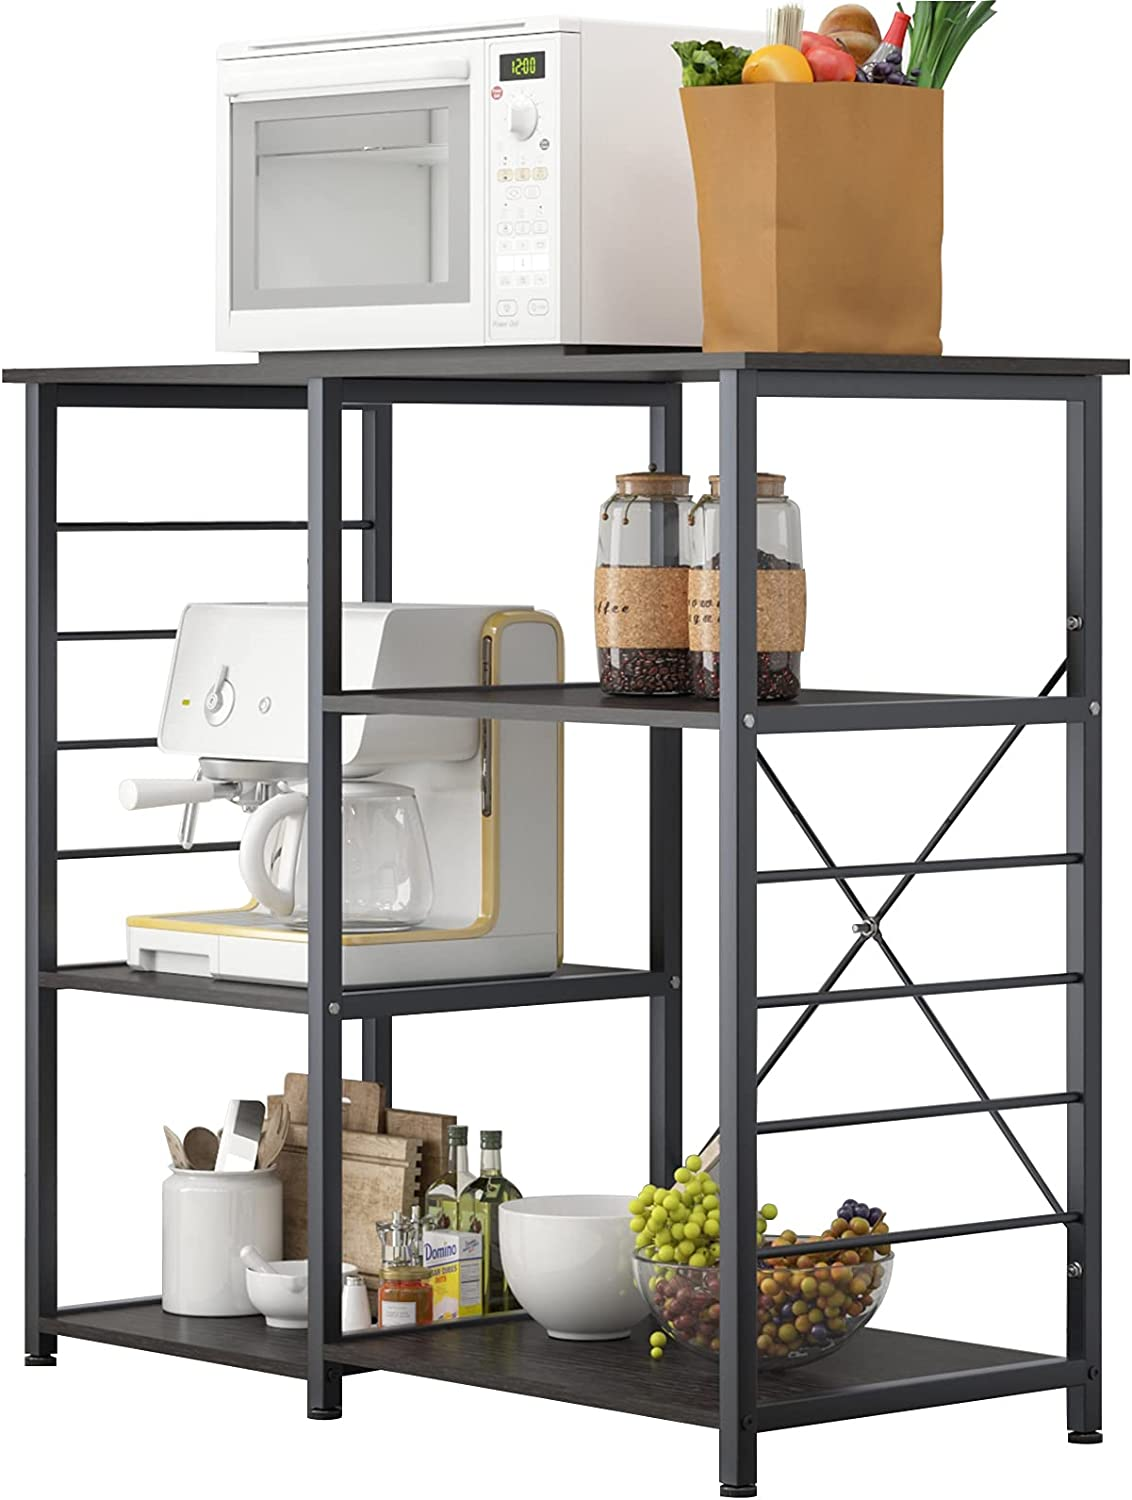 SDHYL At the Ranking TOP9 price of surprise Microwave Oven Rack Storage Shelf Baker's Kitchen Sto